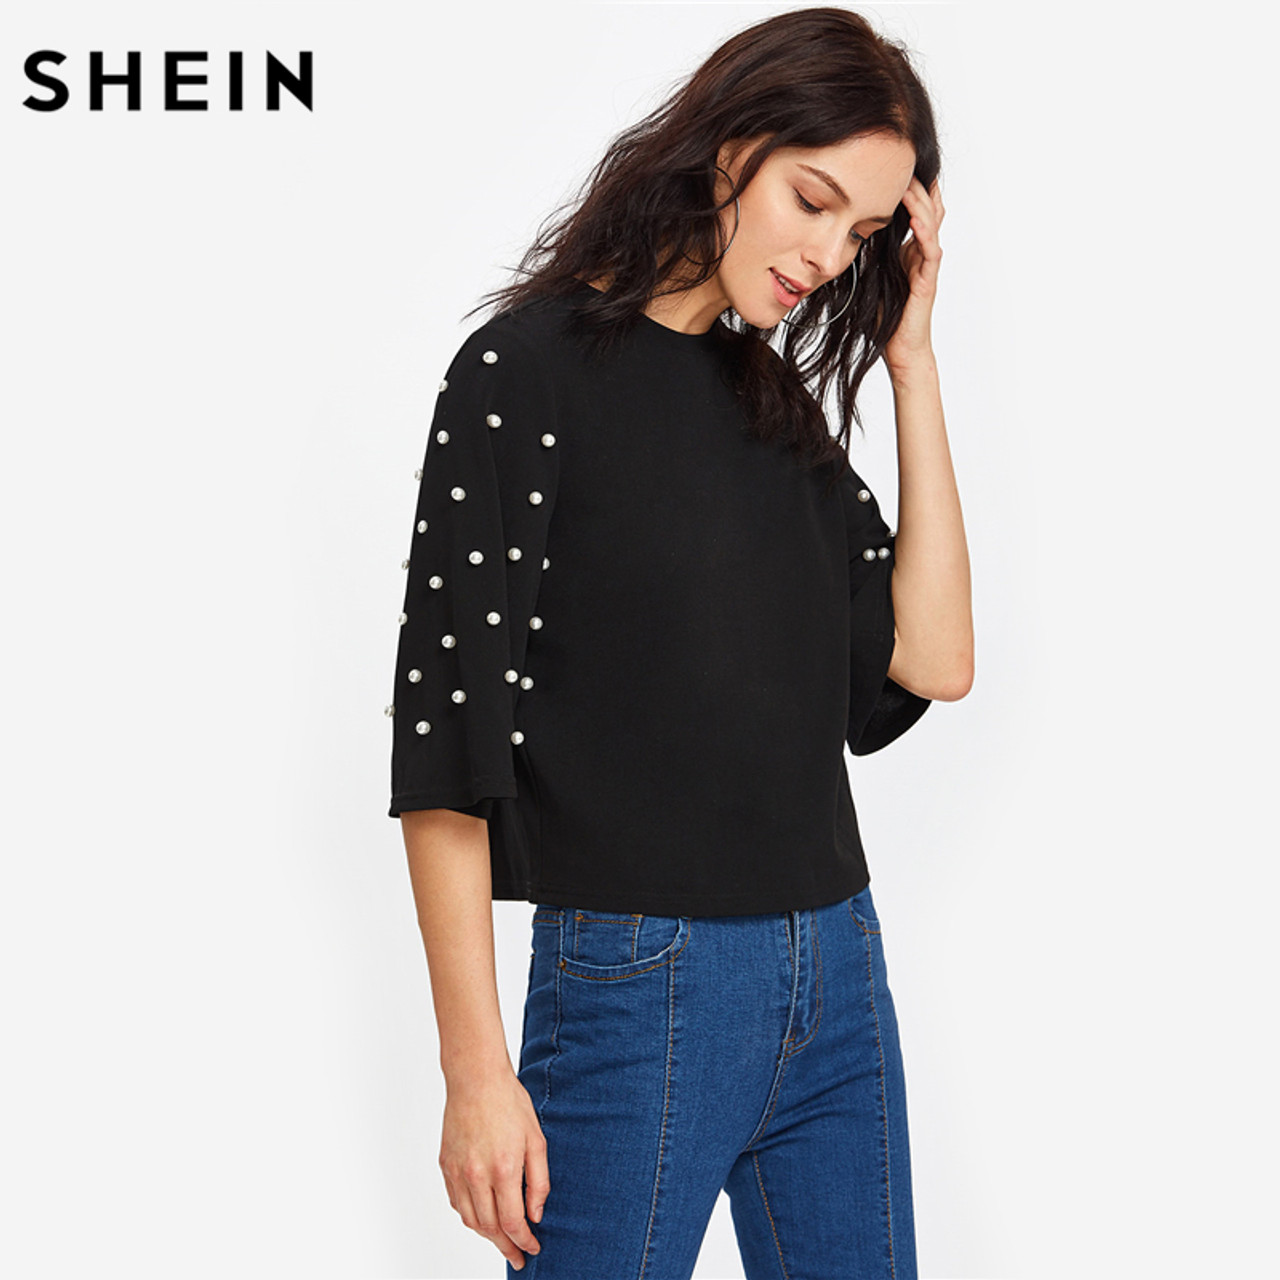 7a76794ff2 ... SHEIN Pearl Embellished Fluted Sleeve Tee Casual Women T shirt Autumn  Elegant Tops Black Half Sleeve ...